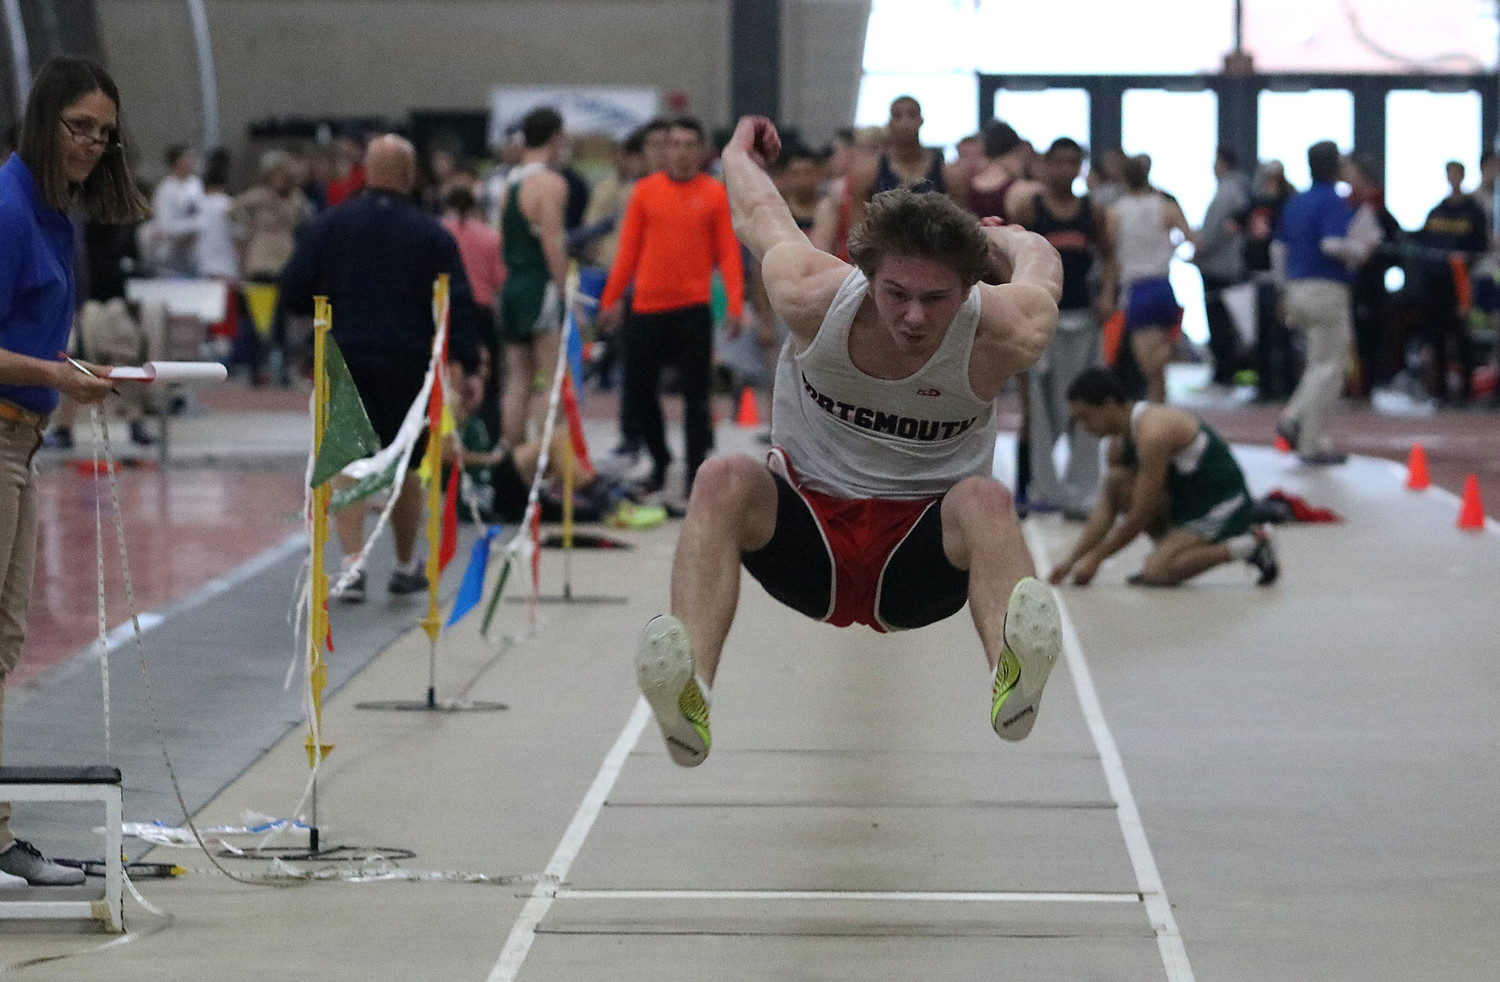 Martin Lasky gets set to land during the long jump.